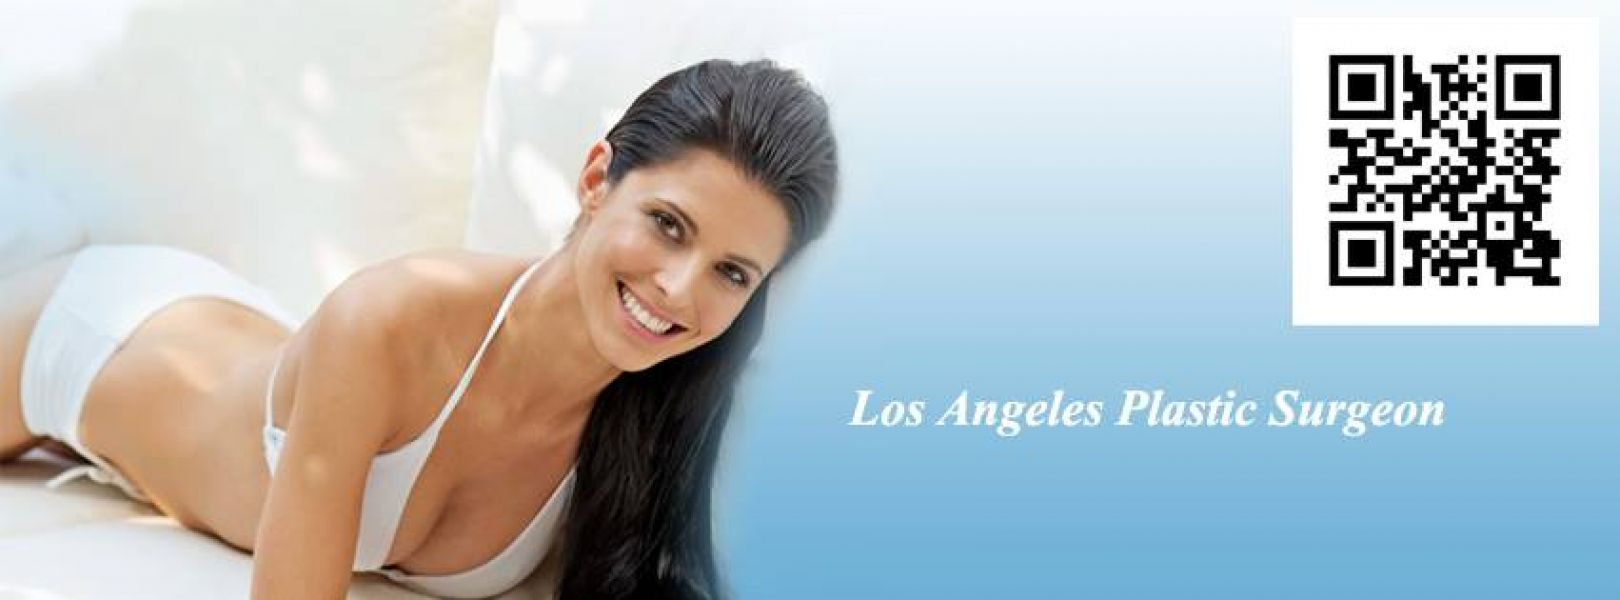 Plastic Surgeon Los Angeles CA